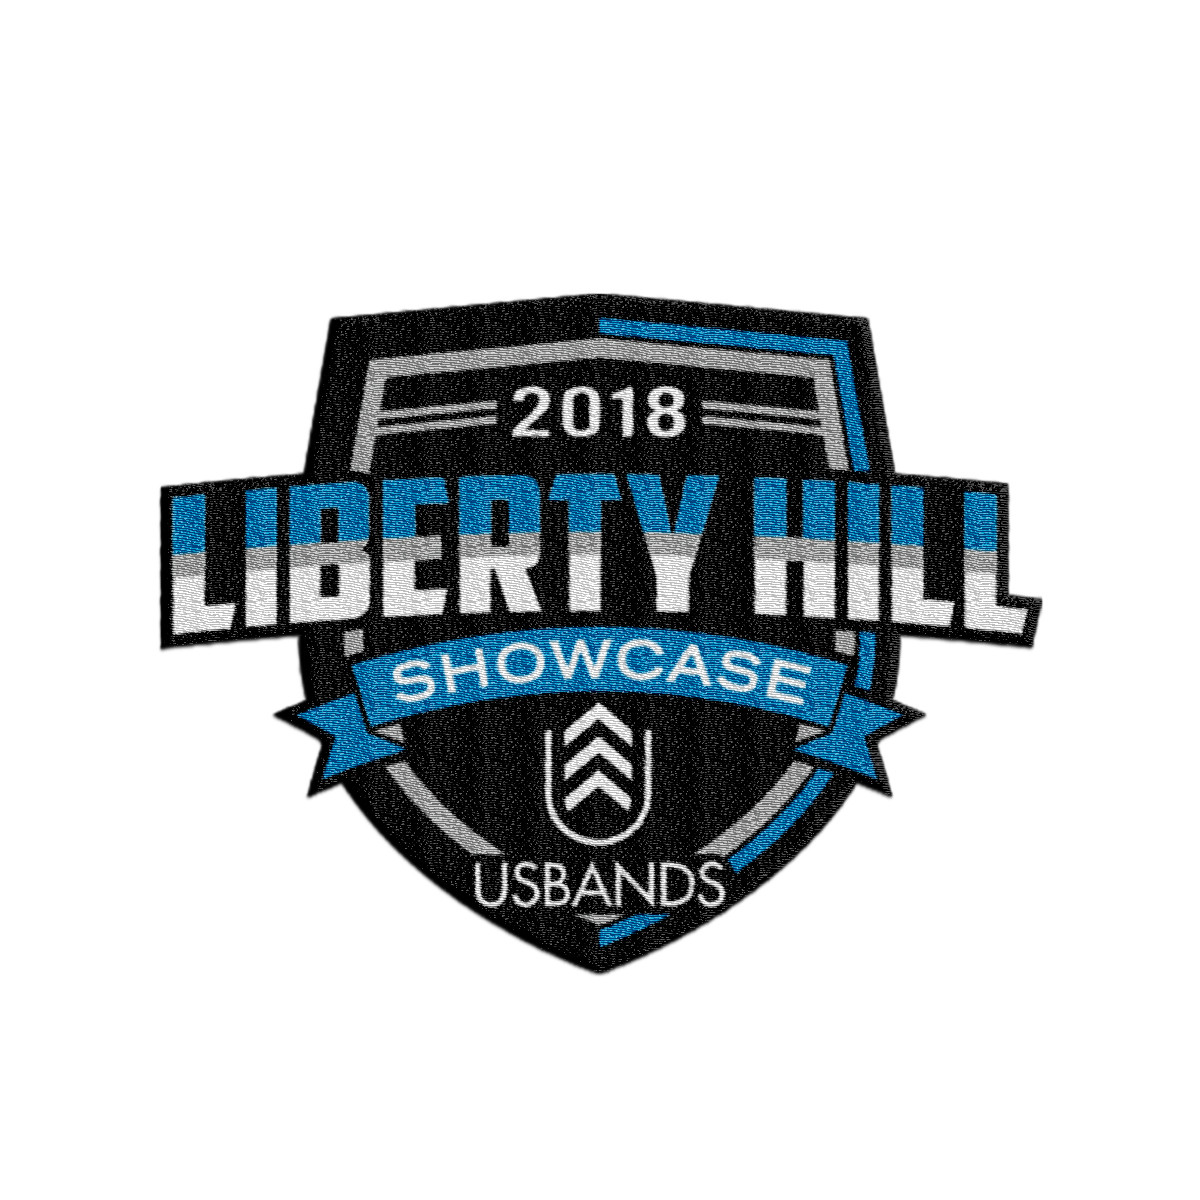 2018 USBands Liberty Hill Showcase Event Patch